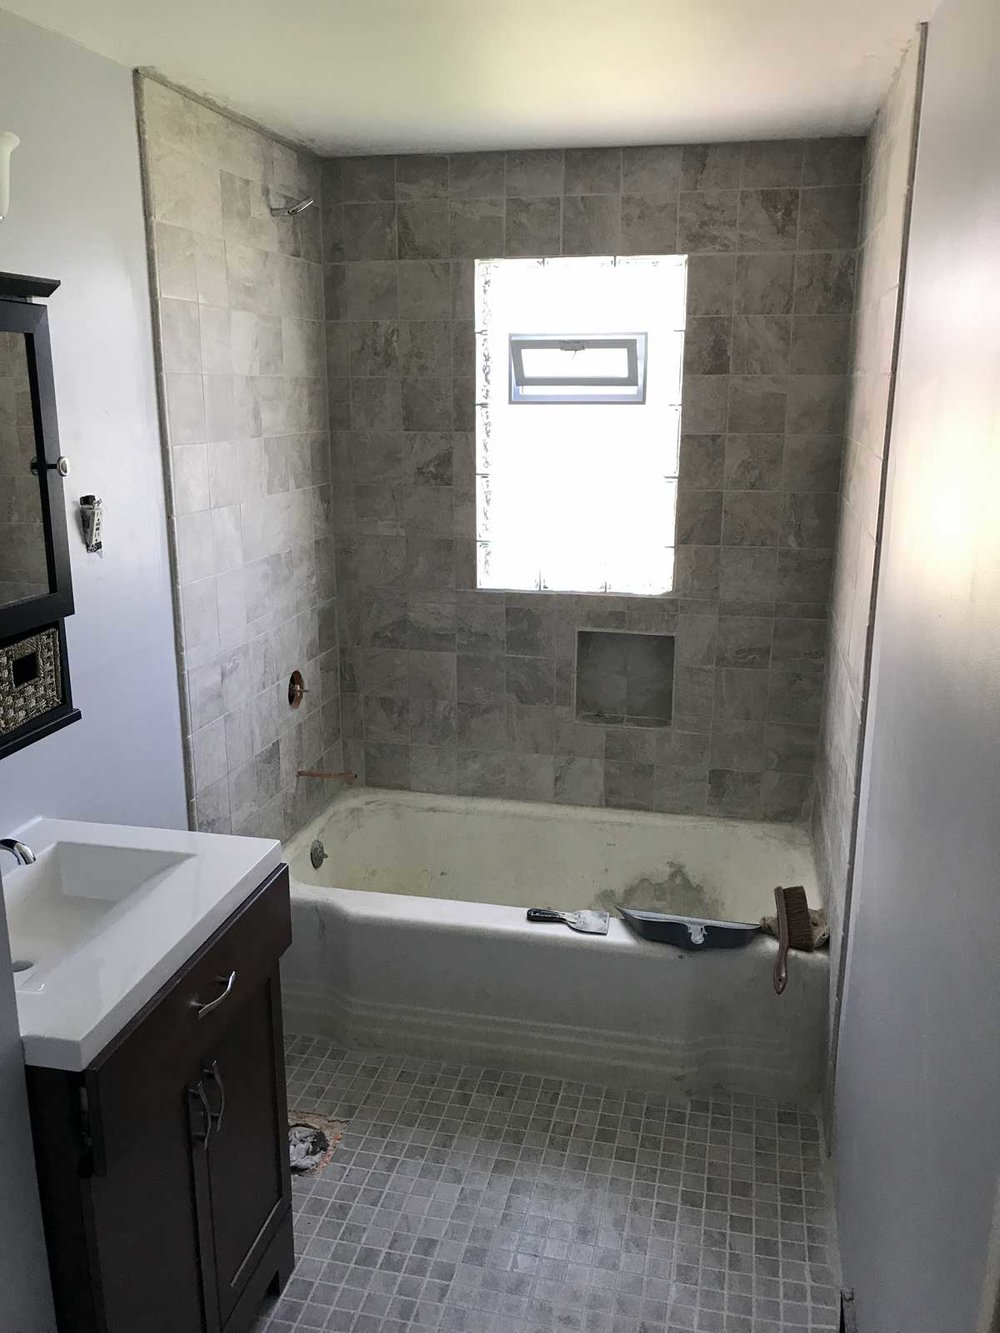 15-Day-Bathroom-Renovation-28.jpg